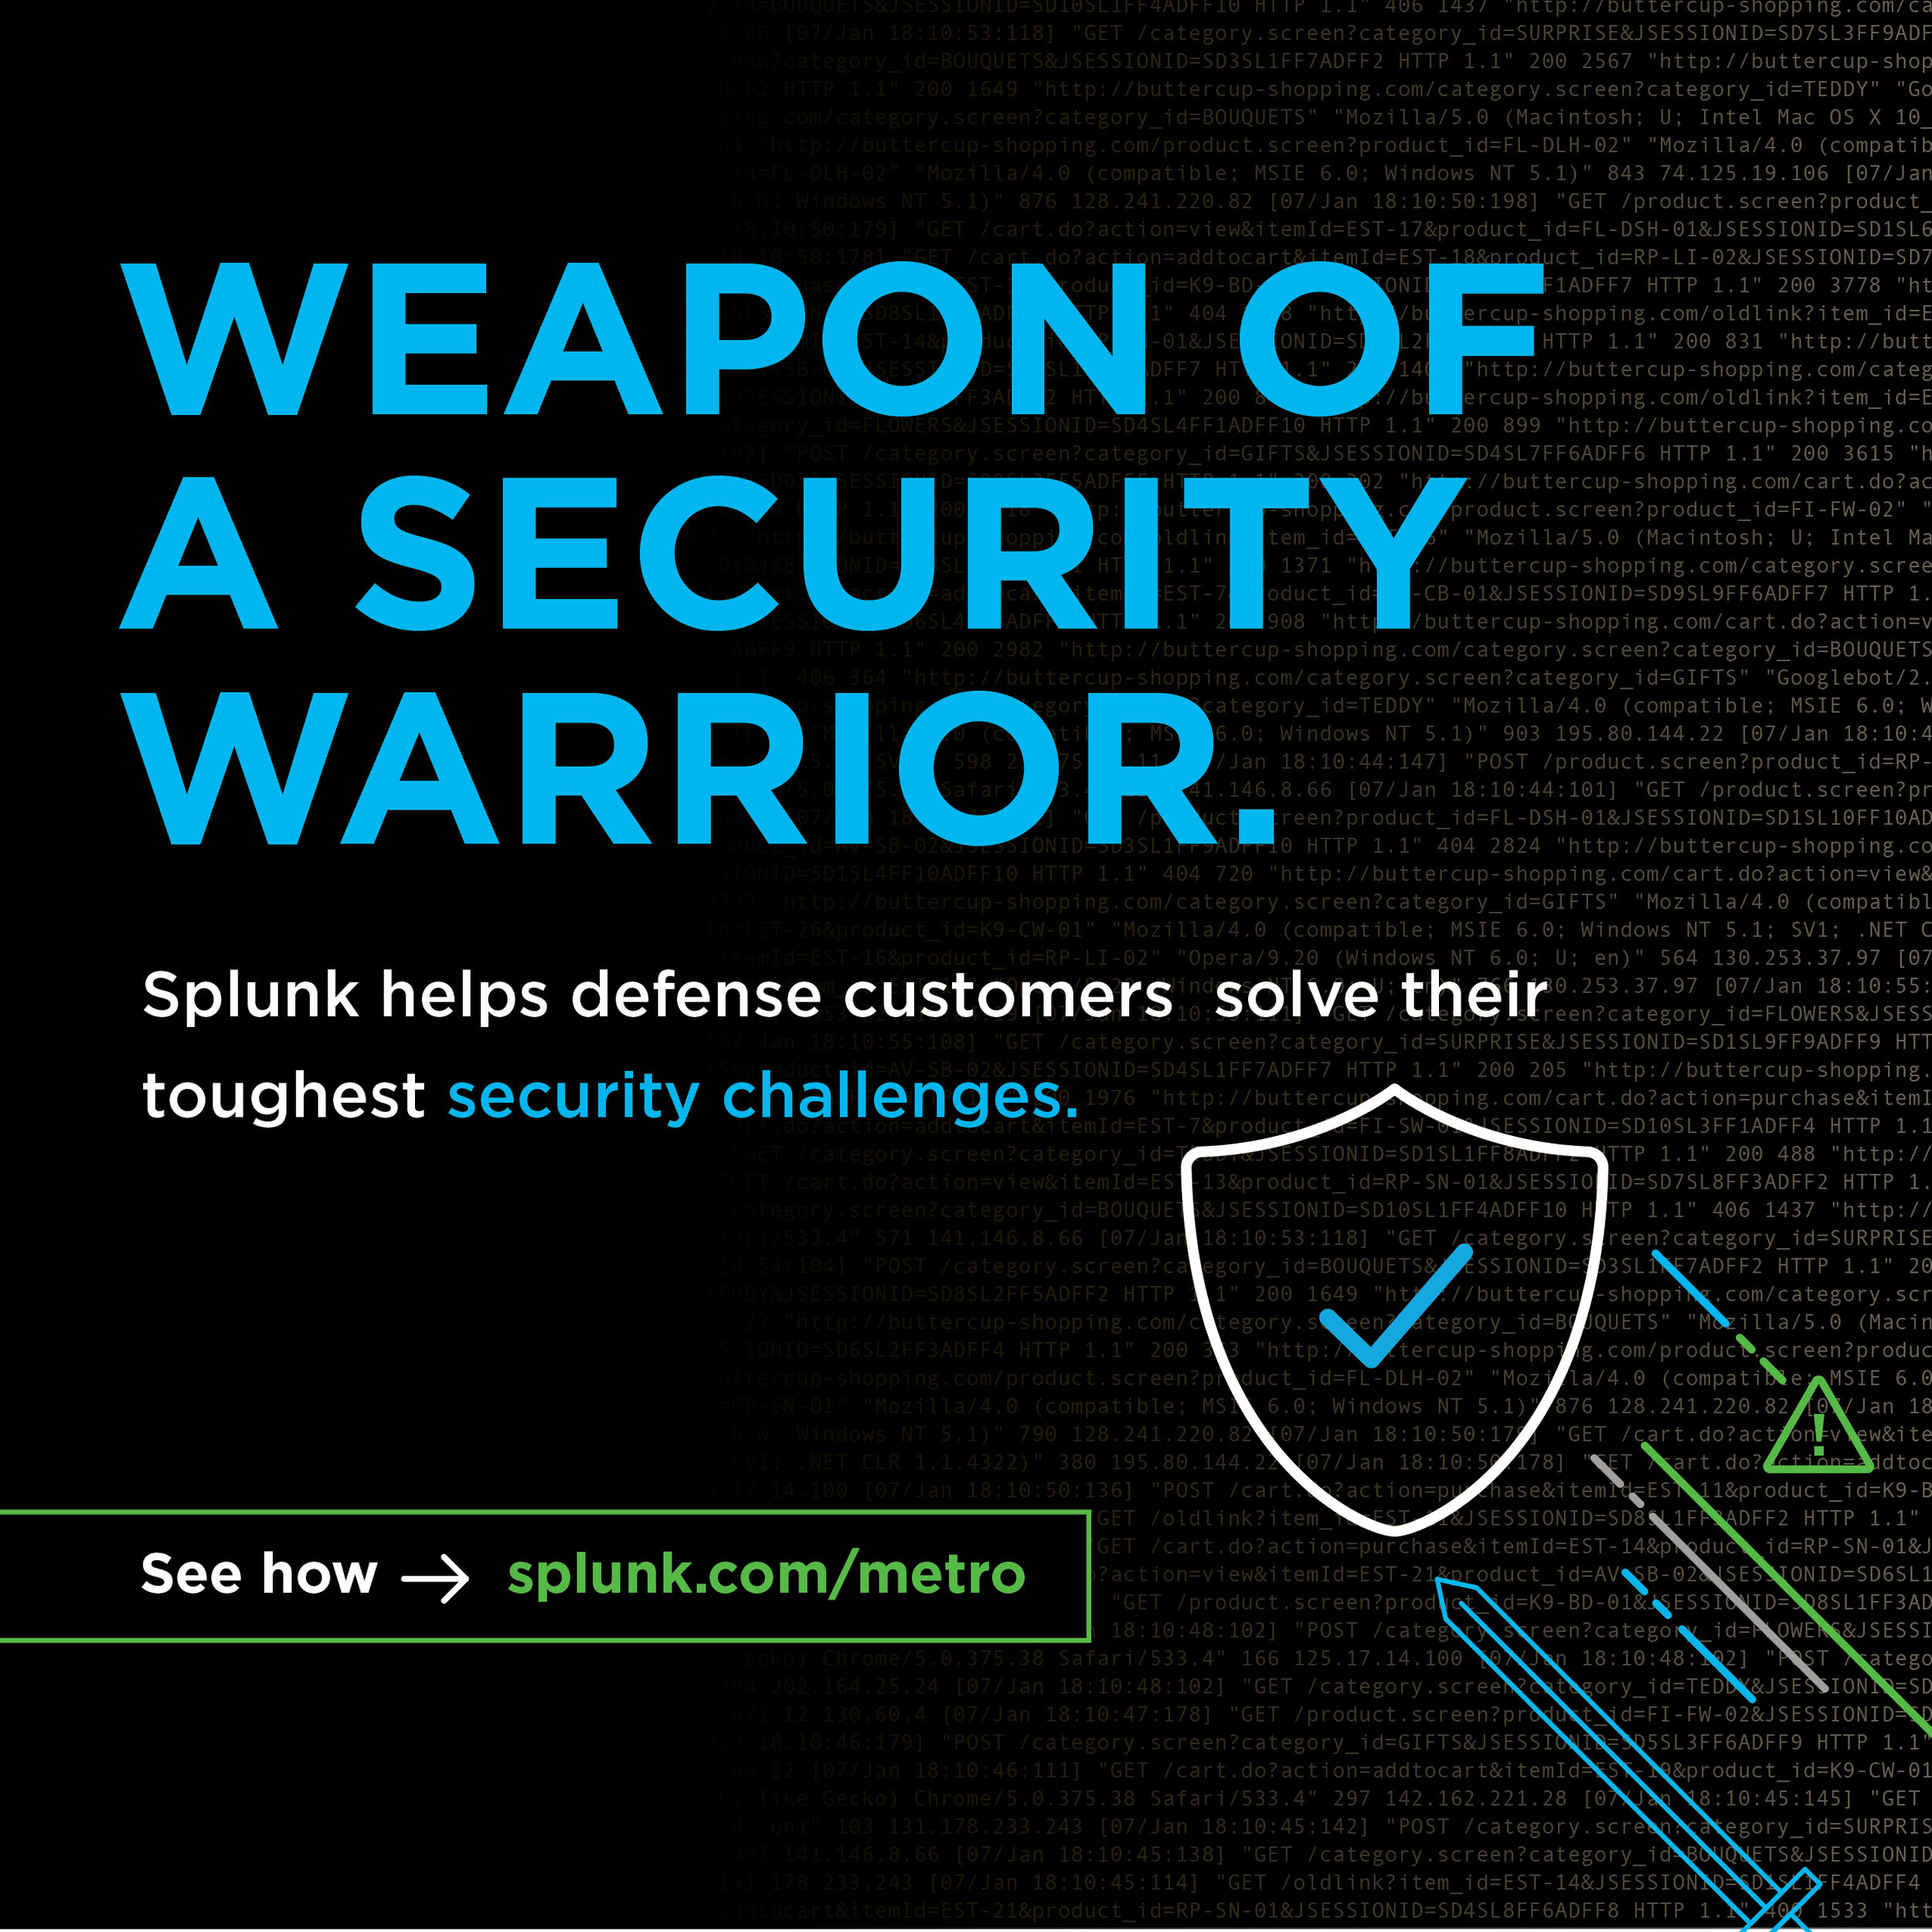 BA-Splunk-DC_Takeover-104_Weapon_612x612.jpg